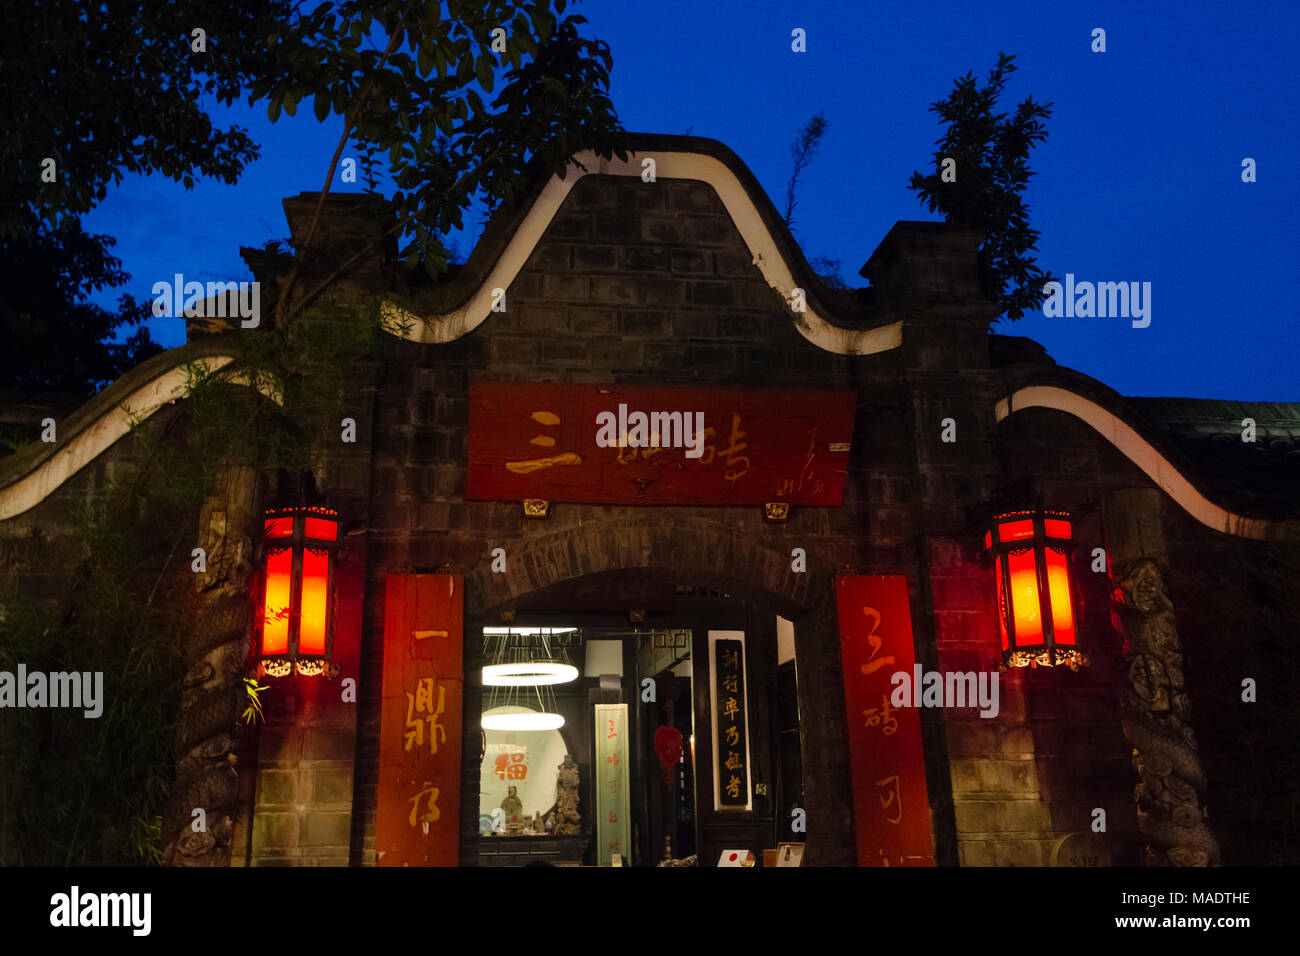 Night view of traditional houses in Wide and Narrow Alleys, Chengdu, Sichuan, China - Stock Image